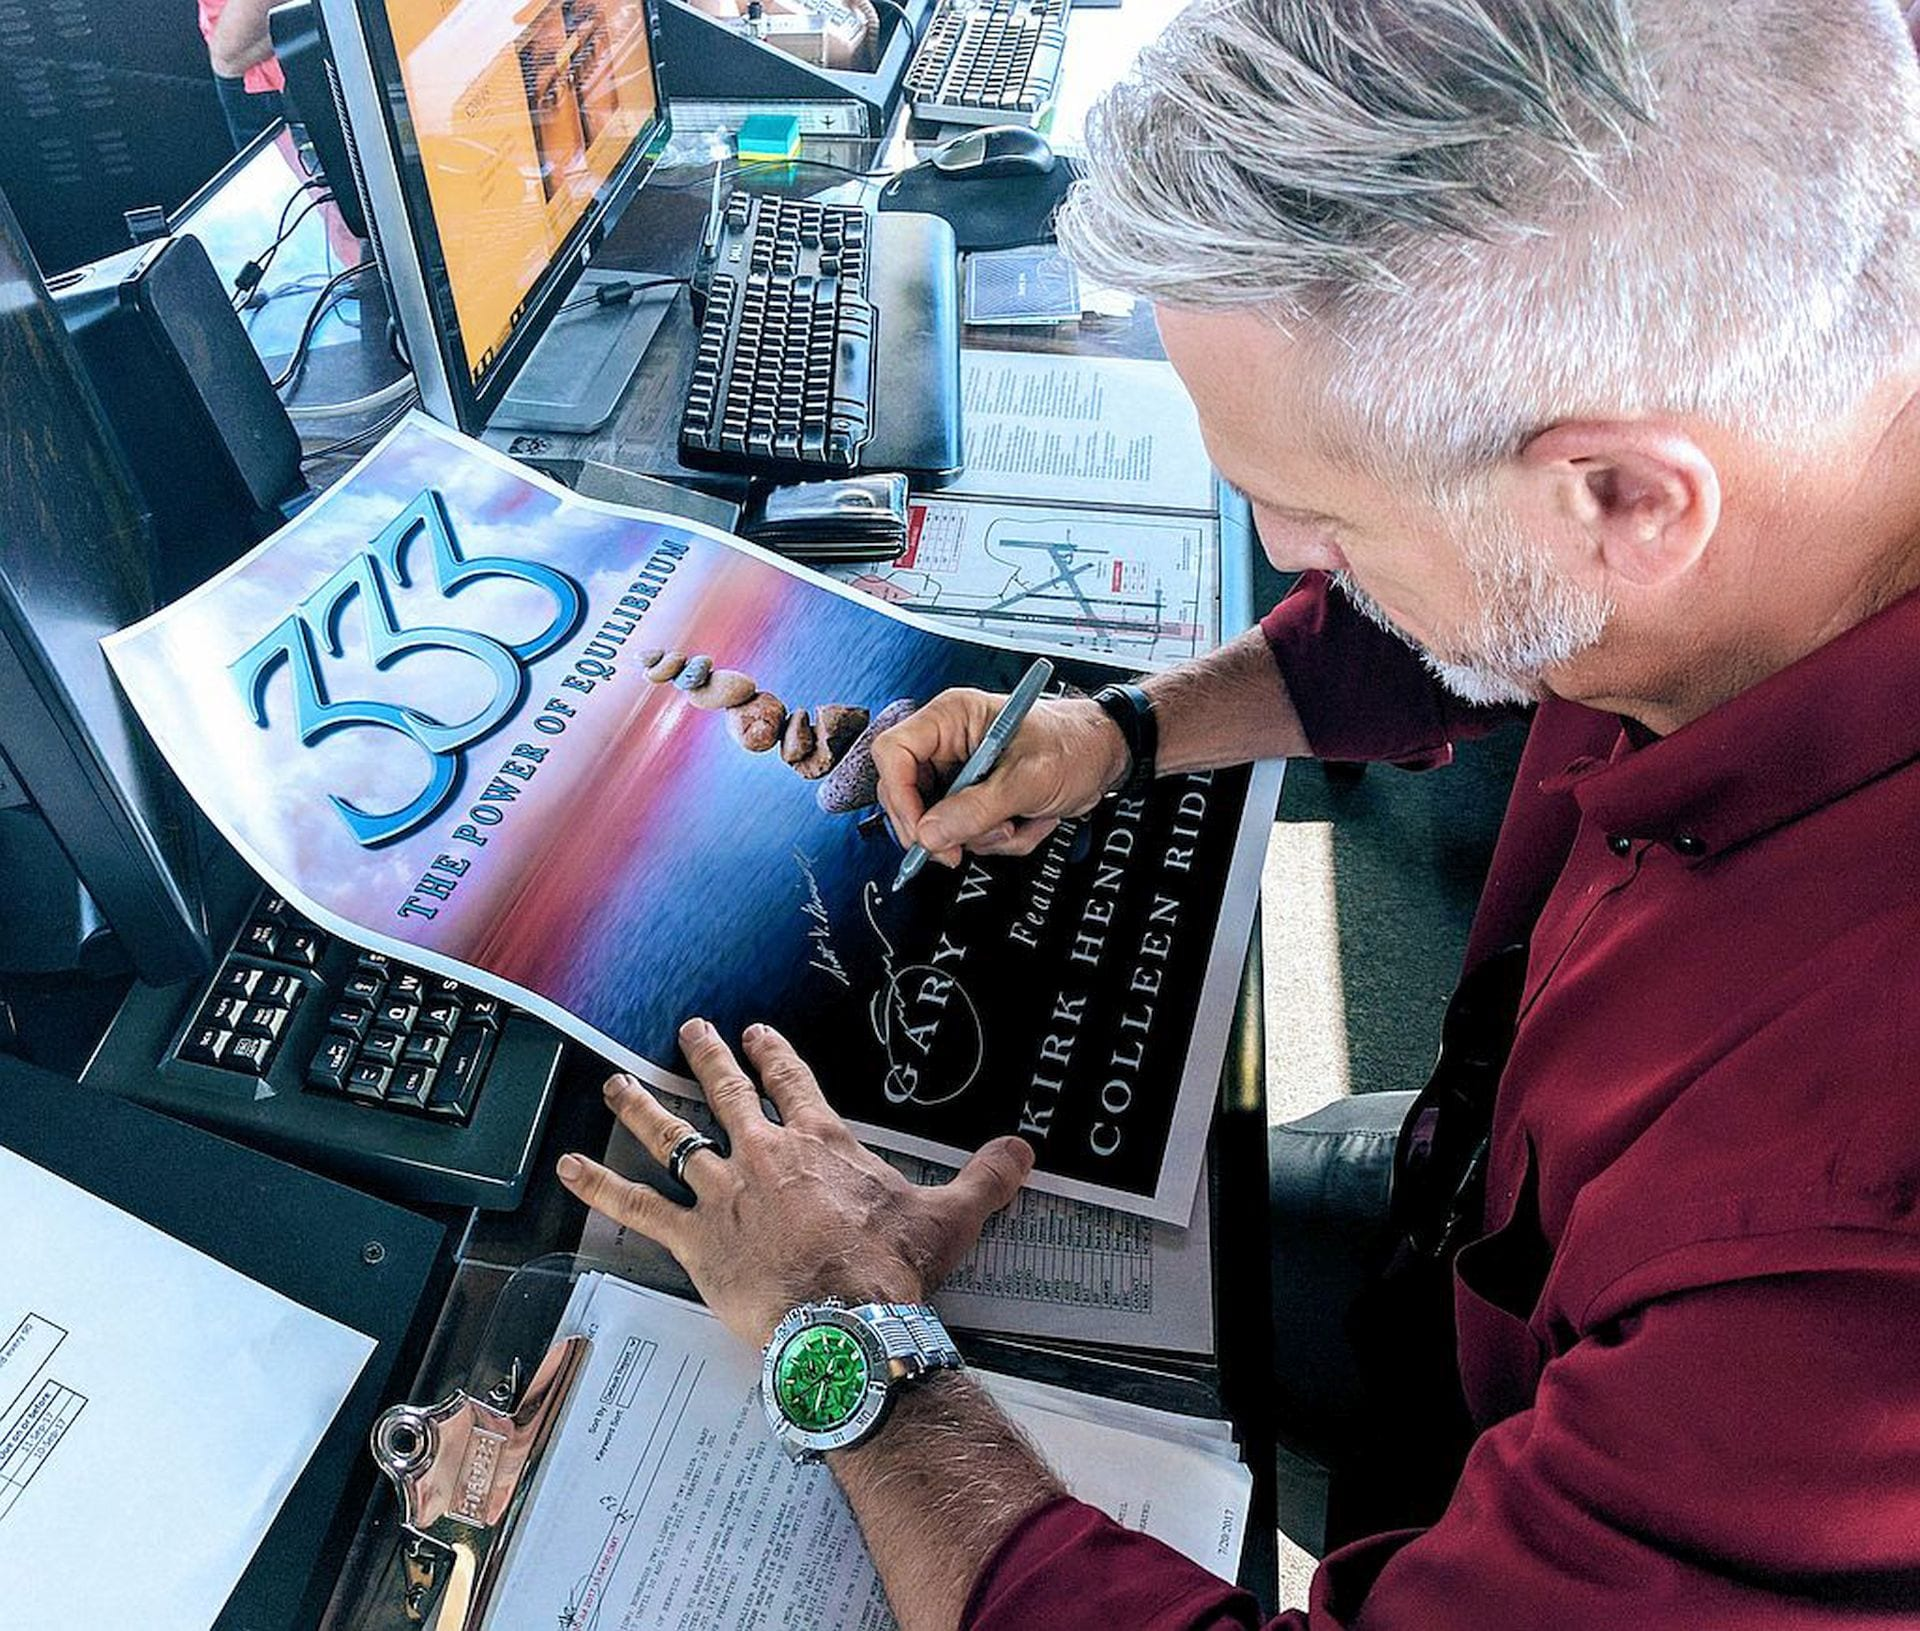 Gary signing a poster for his book: 333